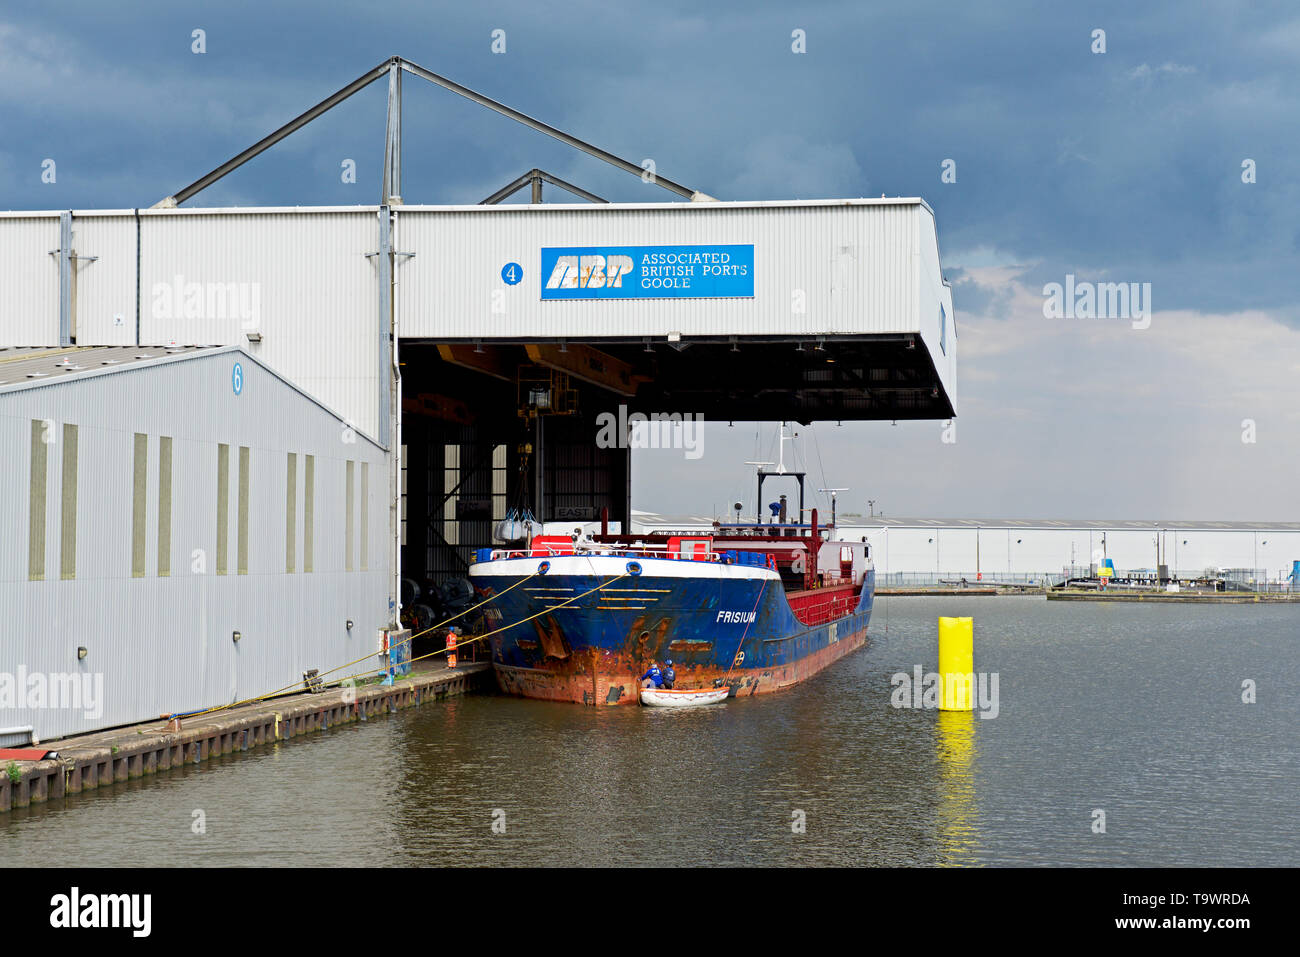 Ship being unloaded in Goole Docks, East Yorkshire, England UK Stock Photo